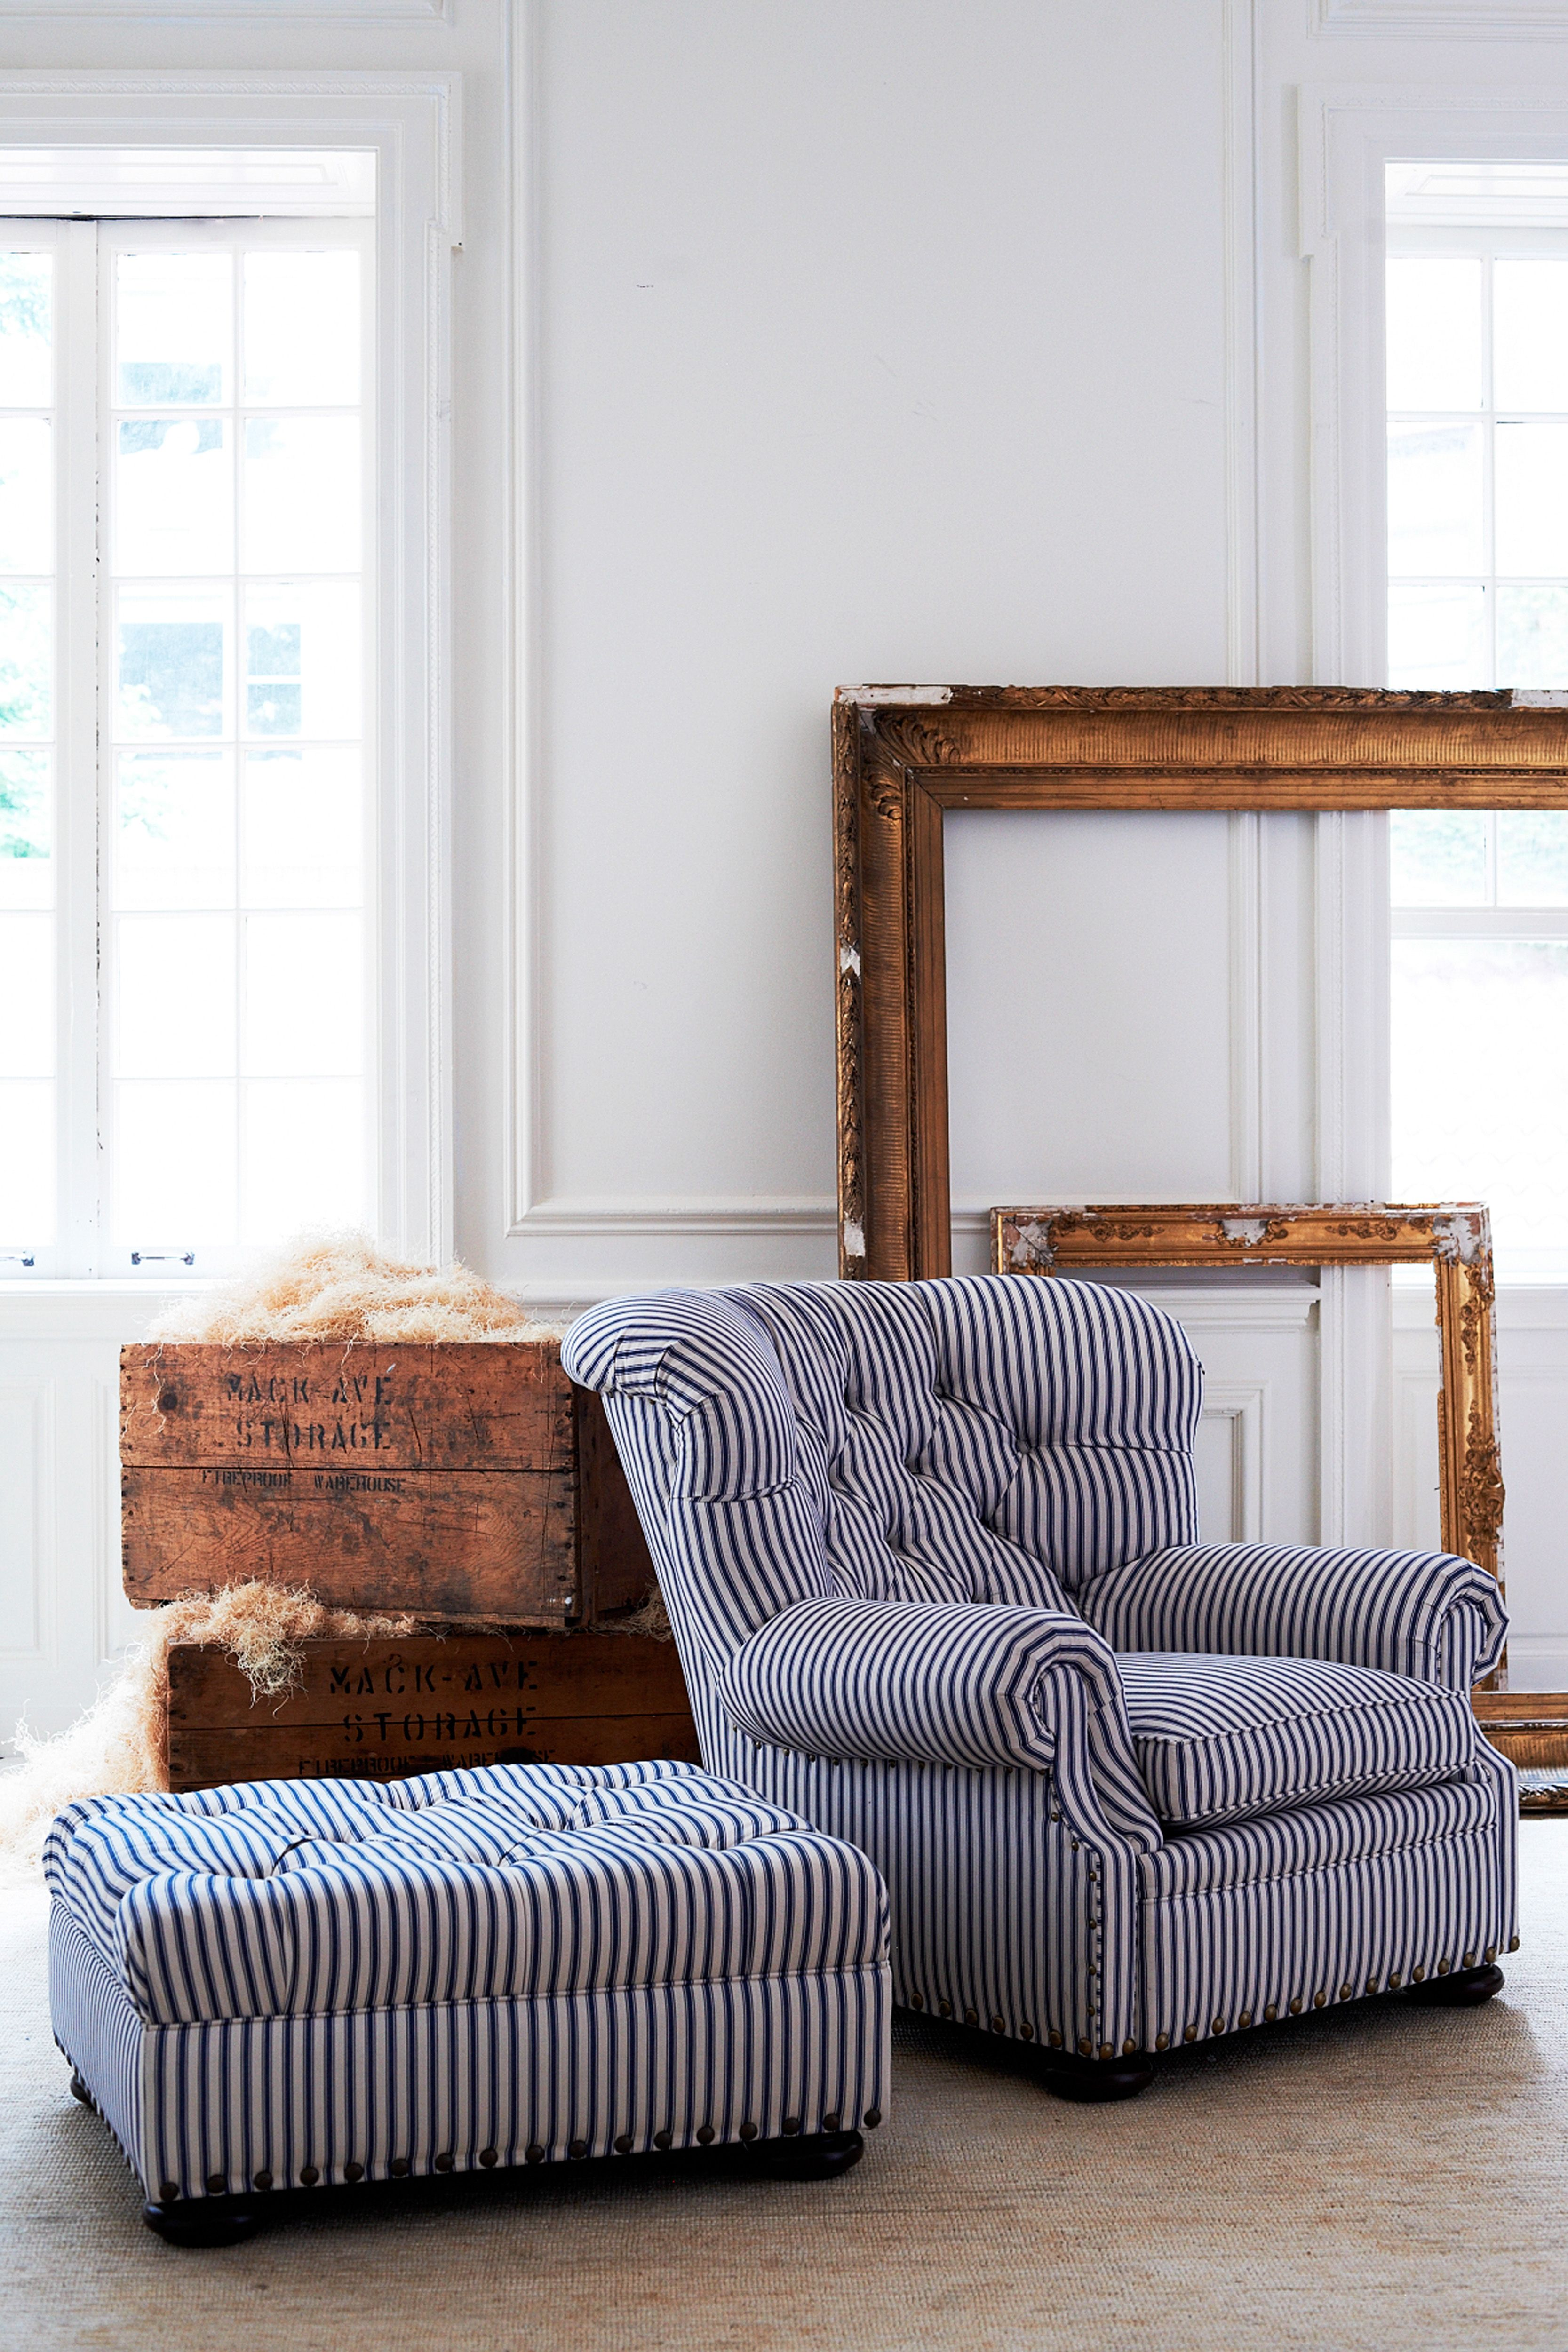 Ralph Lauren Home's tufted Writer's Chair and Ottoman reimagined ...